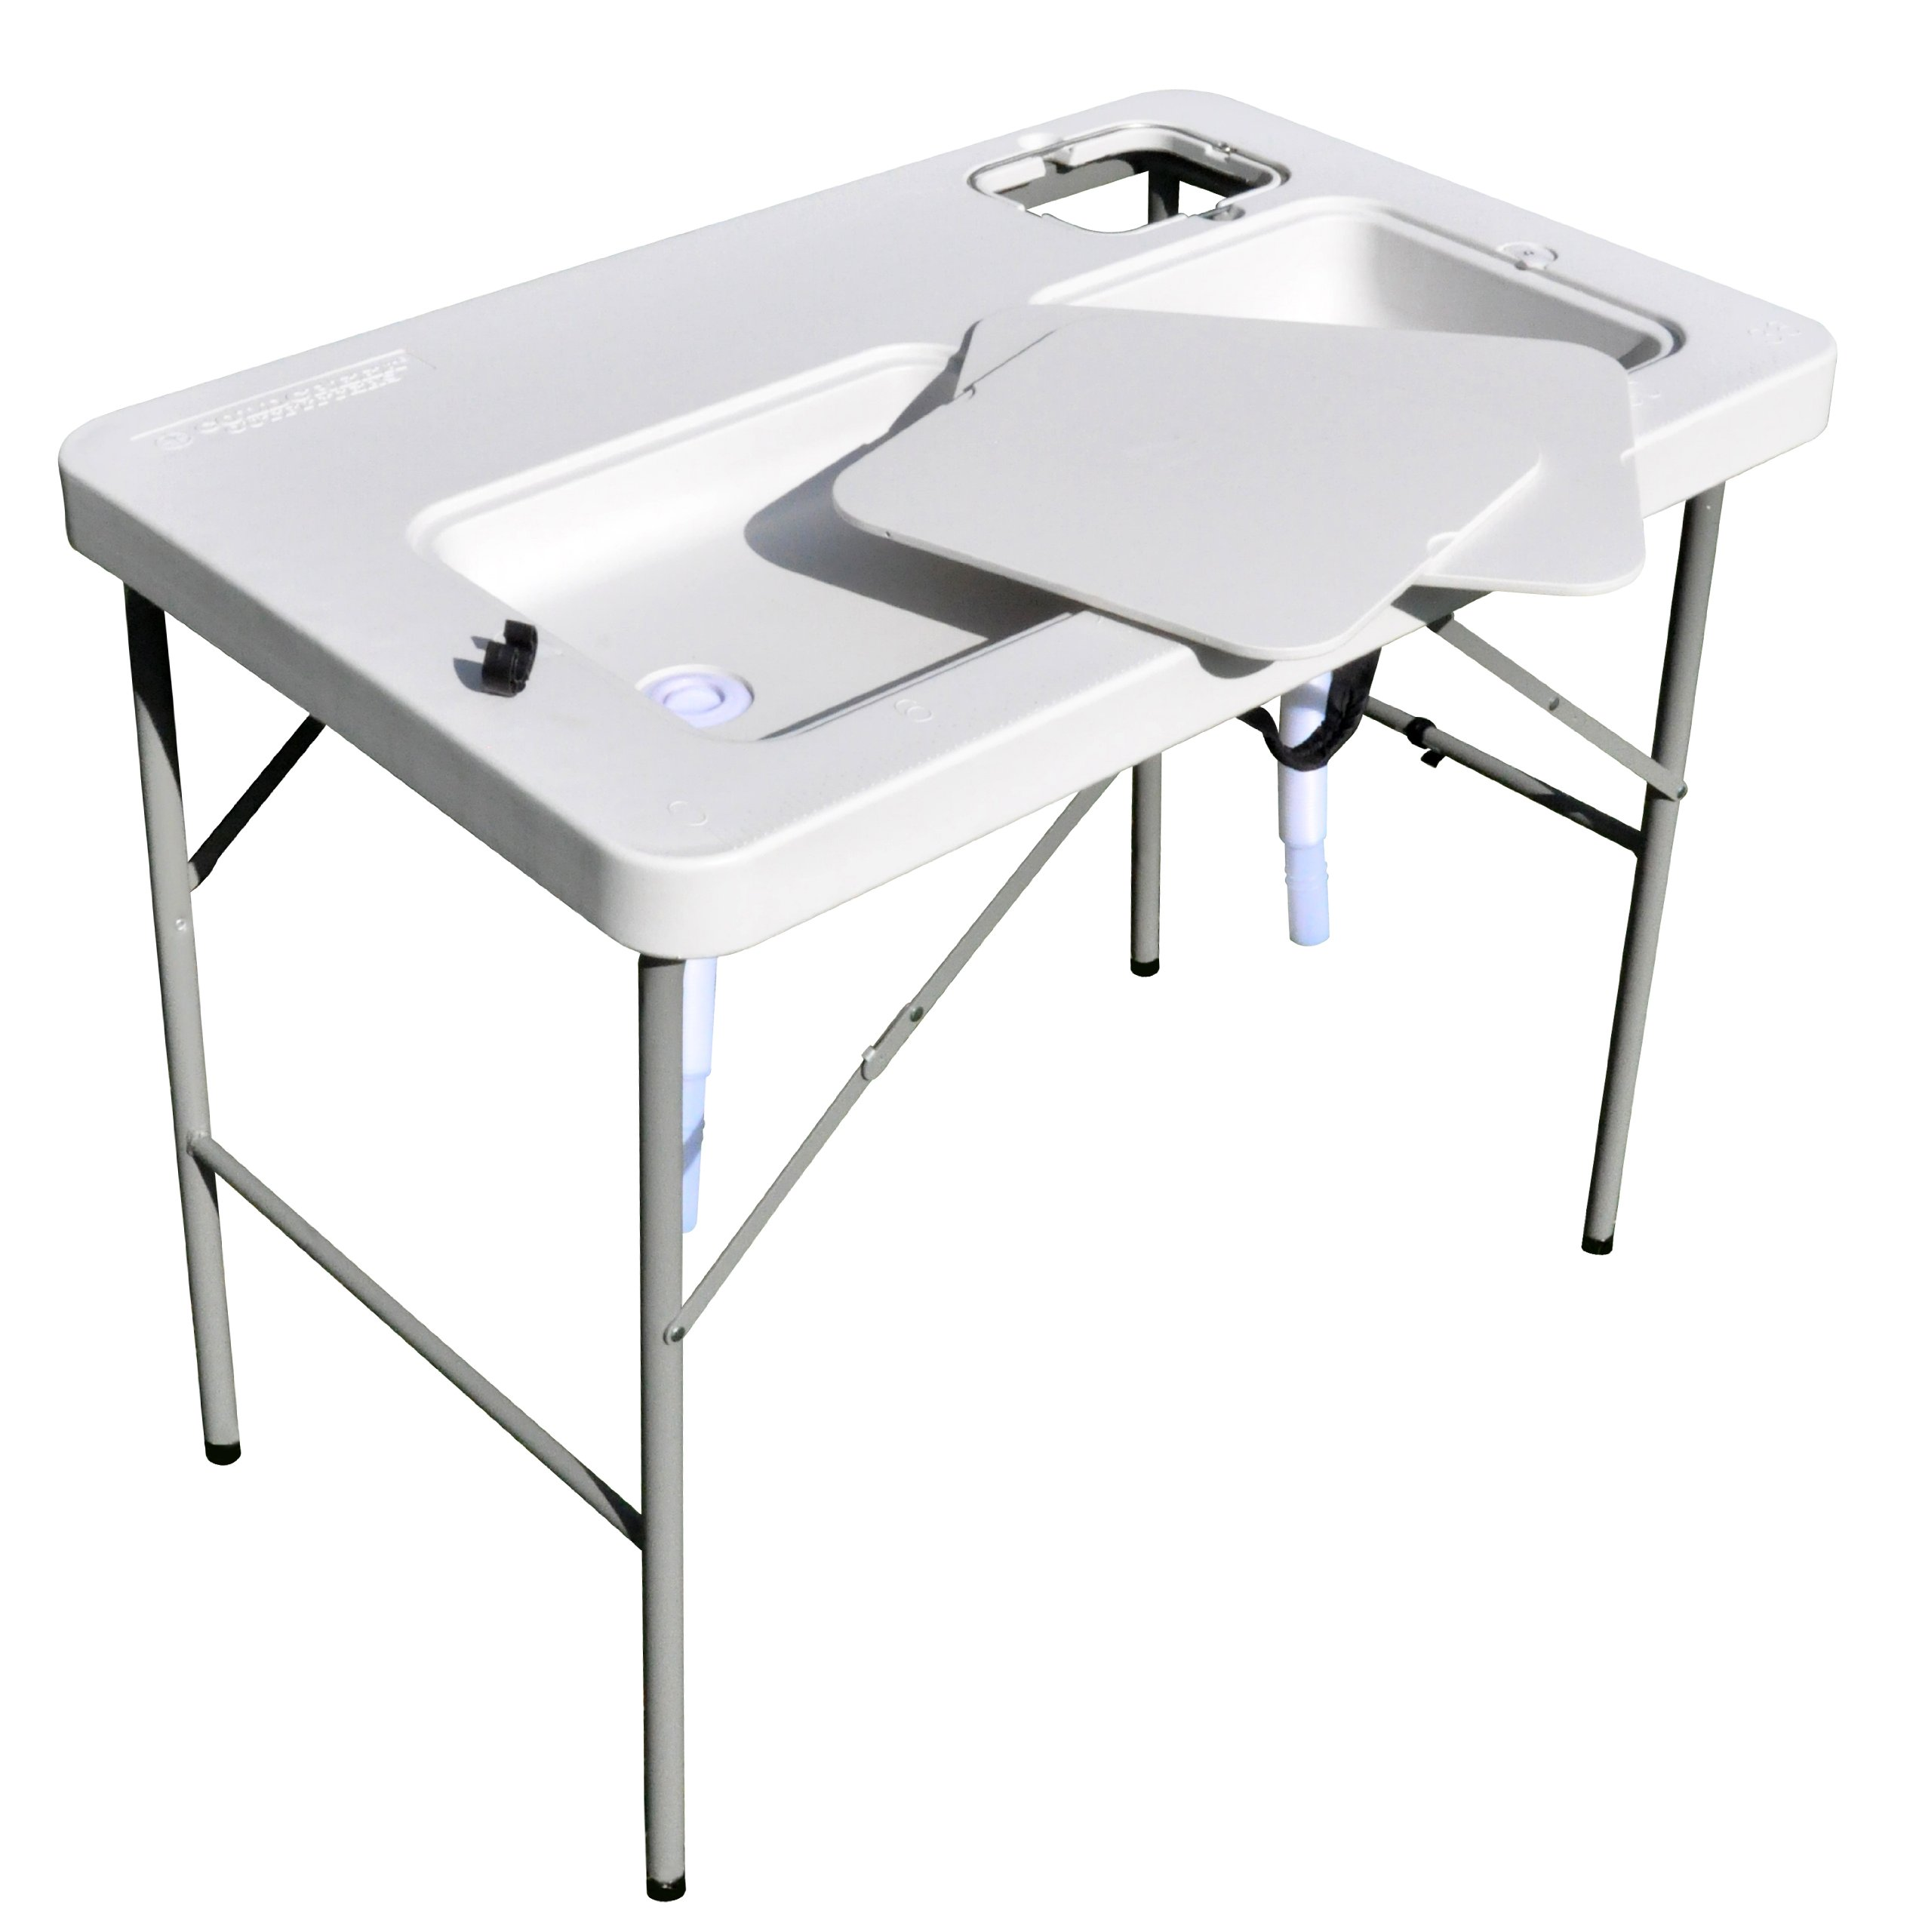 Coldcreek Outfitters Outdoor Washing Table and Sink, Ultimate Utility Work Station for Cleaning Fish or Game, Foldable Camp Table with Sink